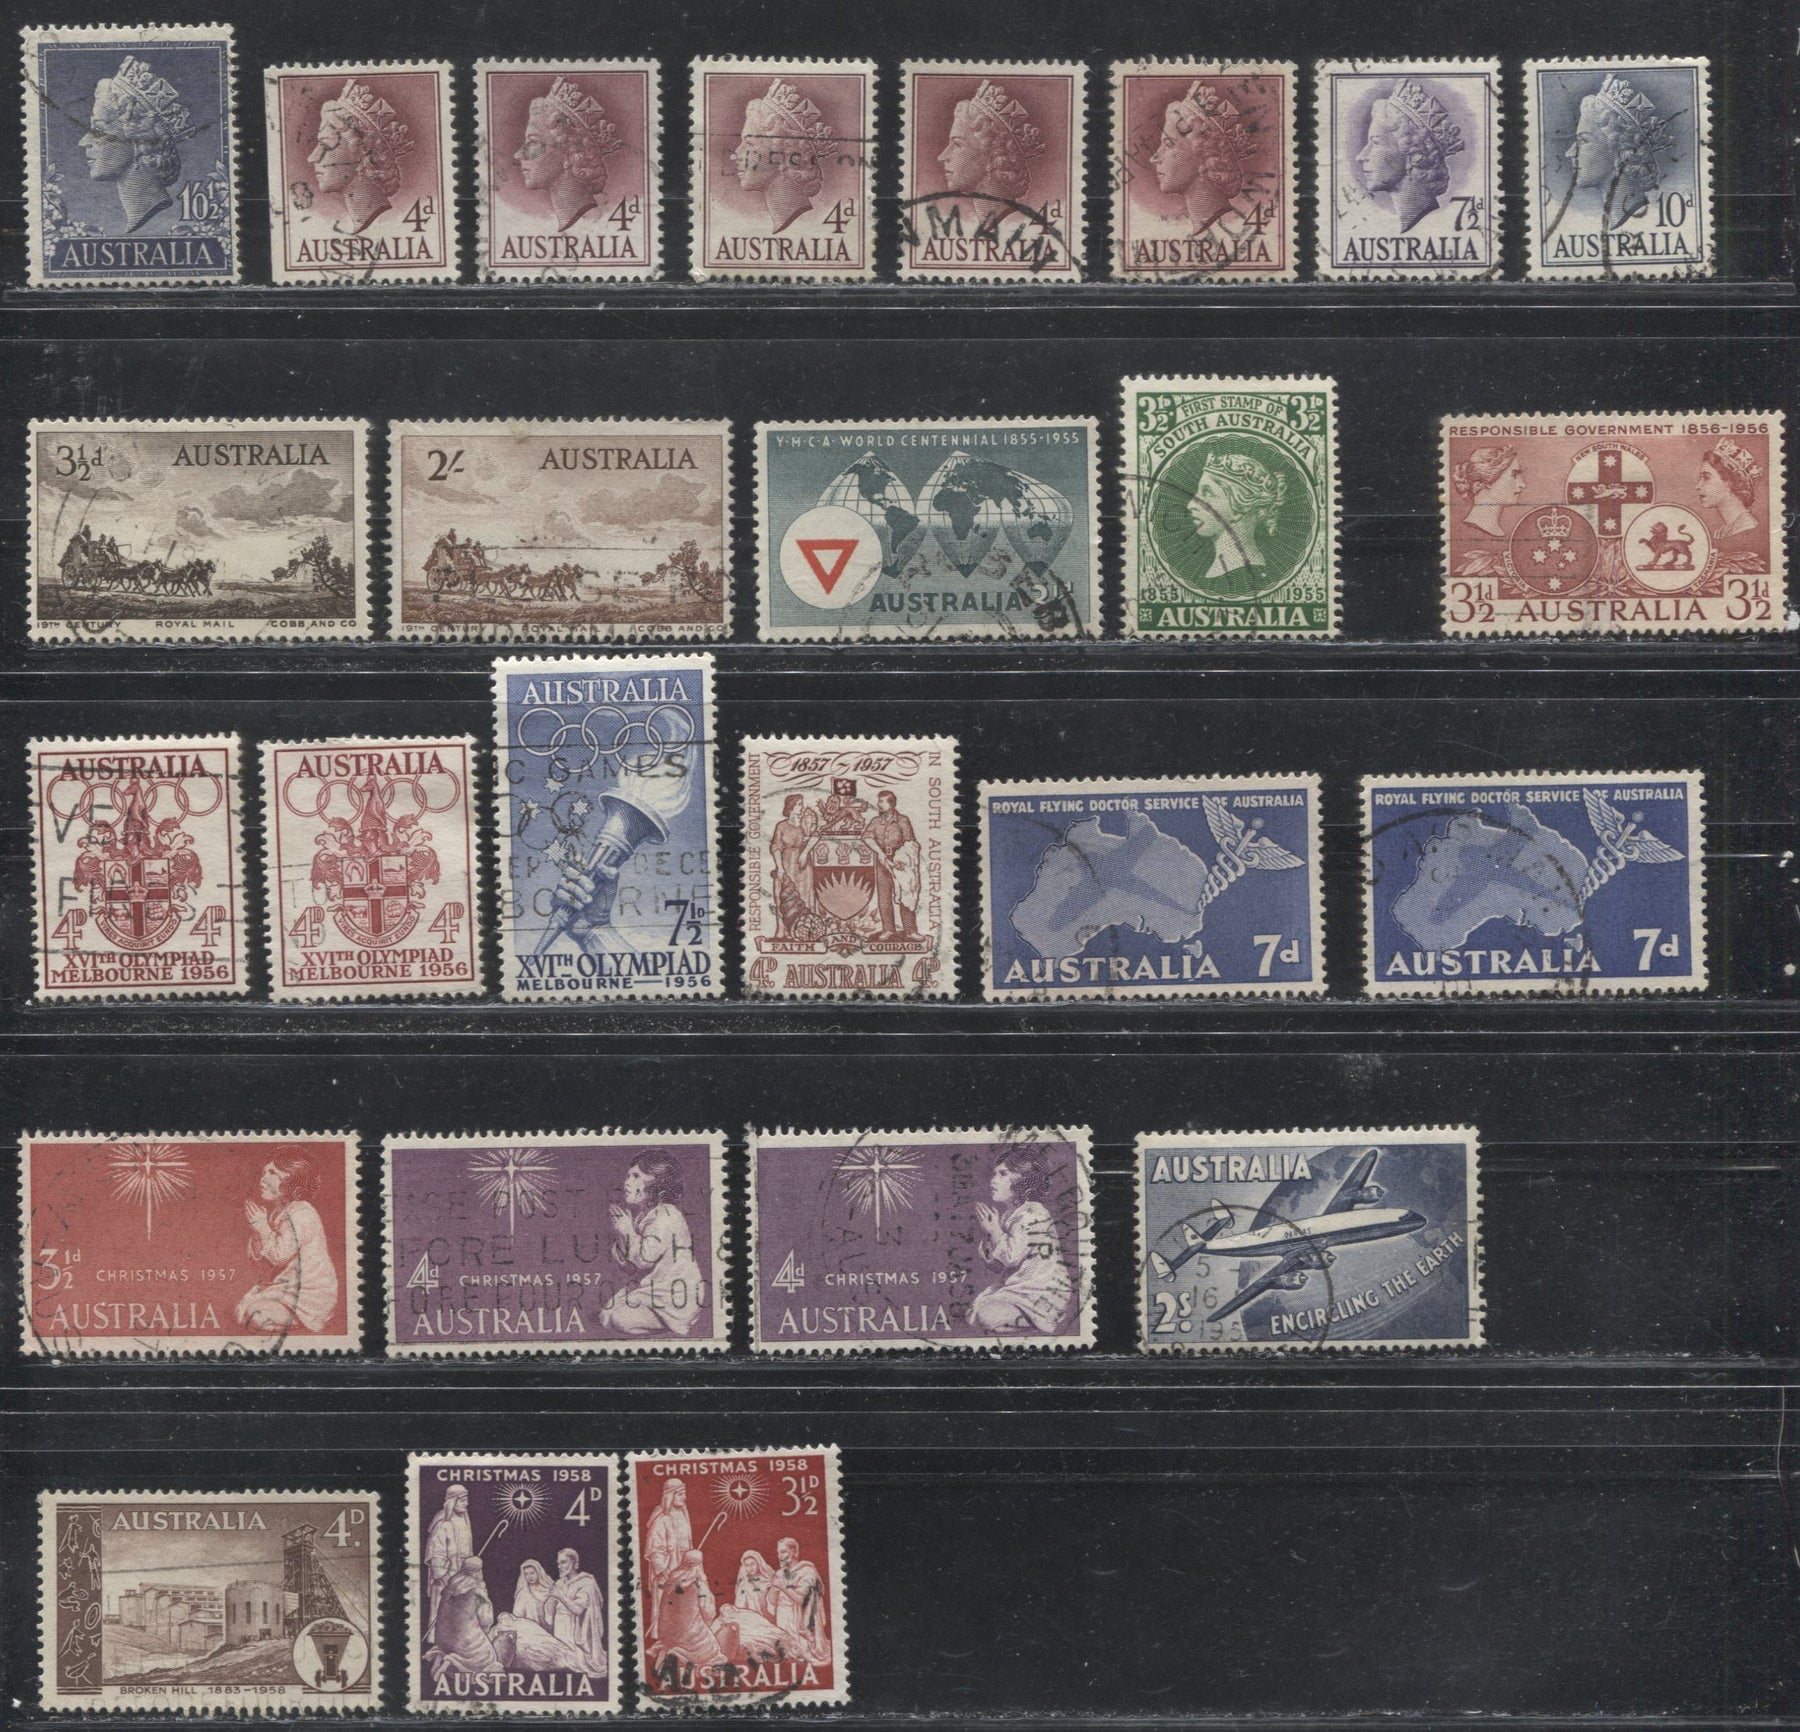 Australia #279/313, C8 (SG#282/307) 1956-1958 Commemoratives and 1954-57 Definitives, A Specialized Lot of 26 Mostly Fine Used Stamps